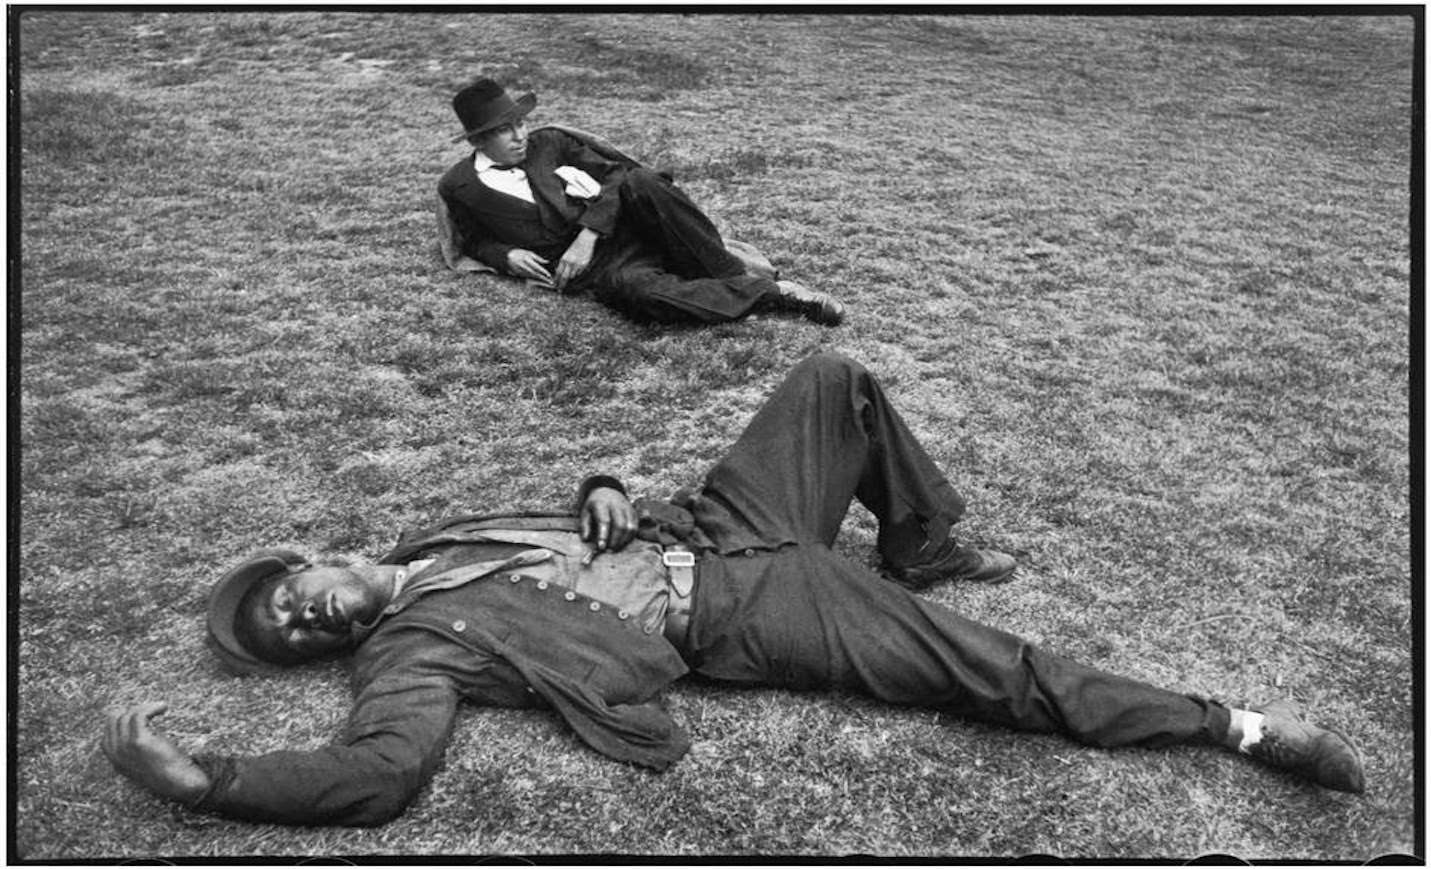 France in 1932 by Henri Cartier-Bresson (8)